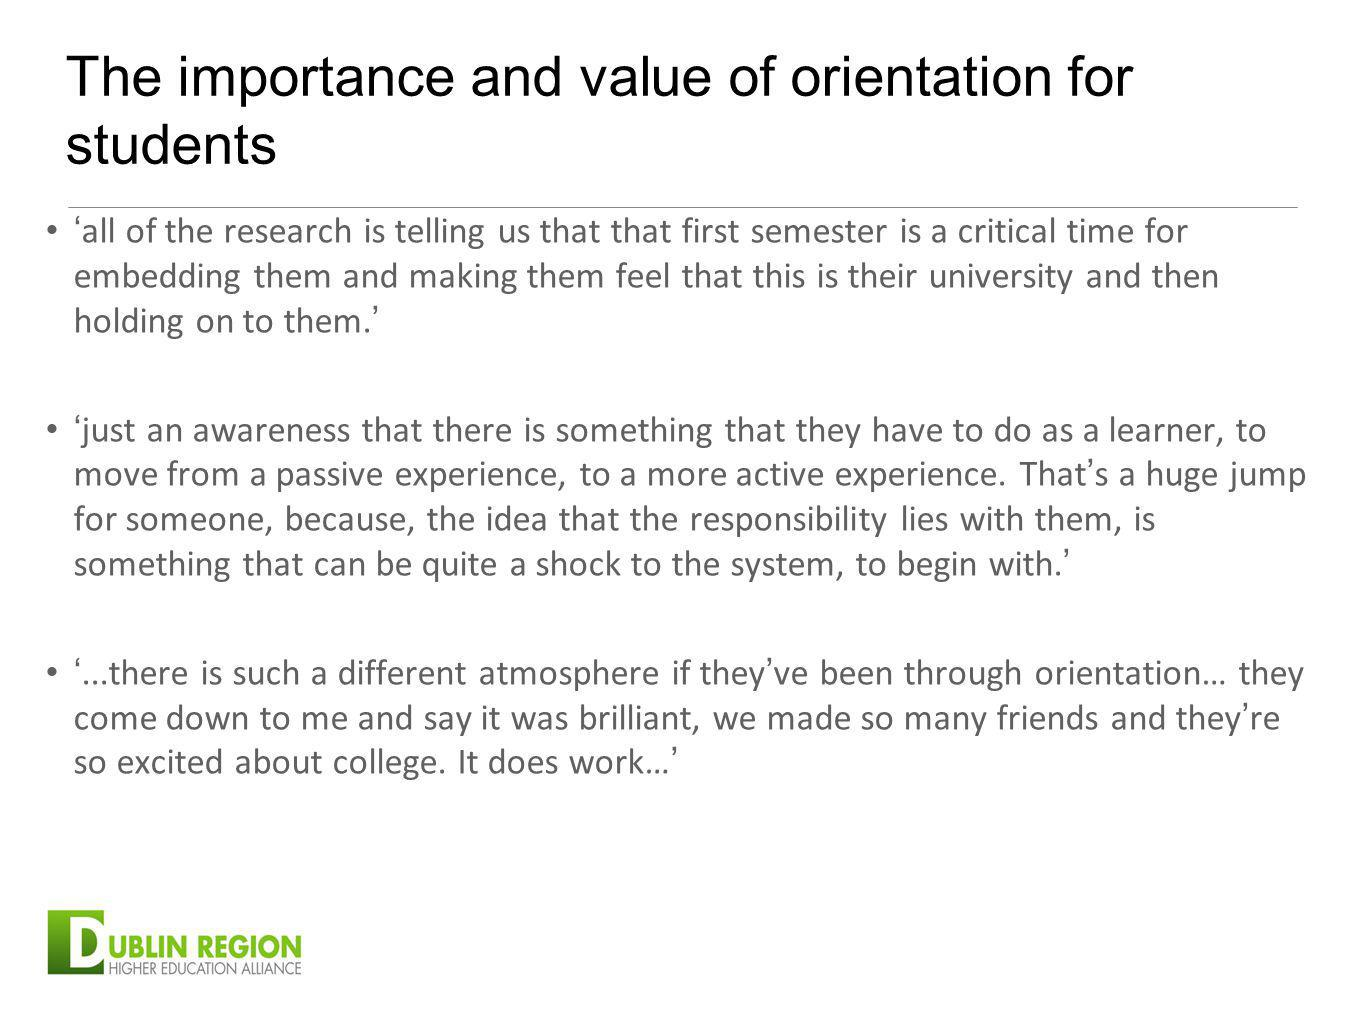 The importance and value of orientation for students all of the research is telling us that that first semester is a critical time for embedding them